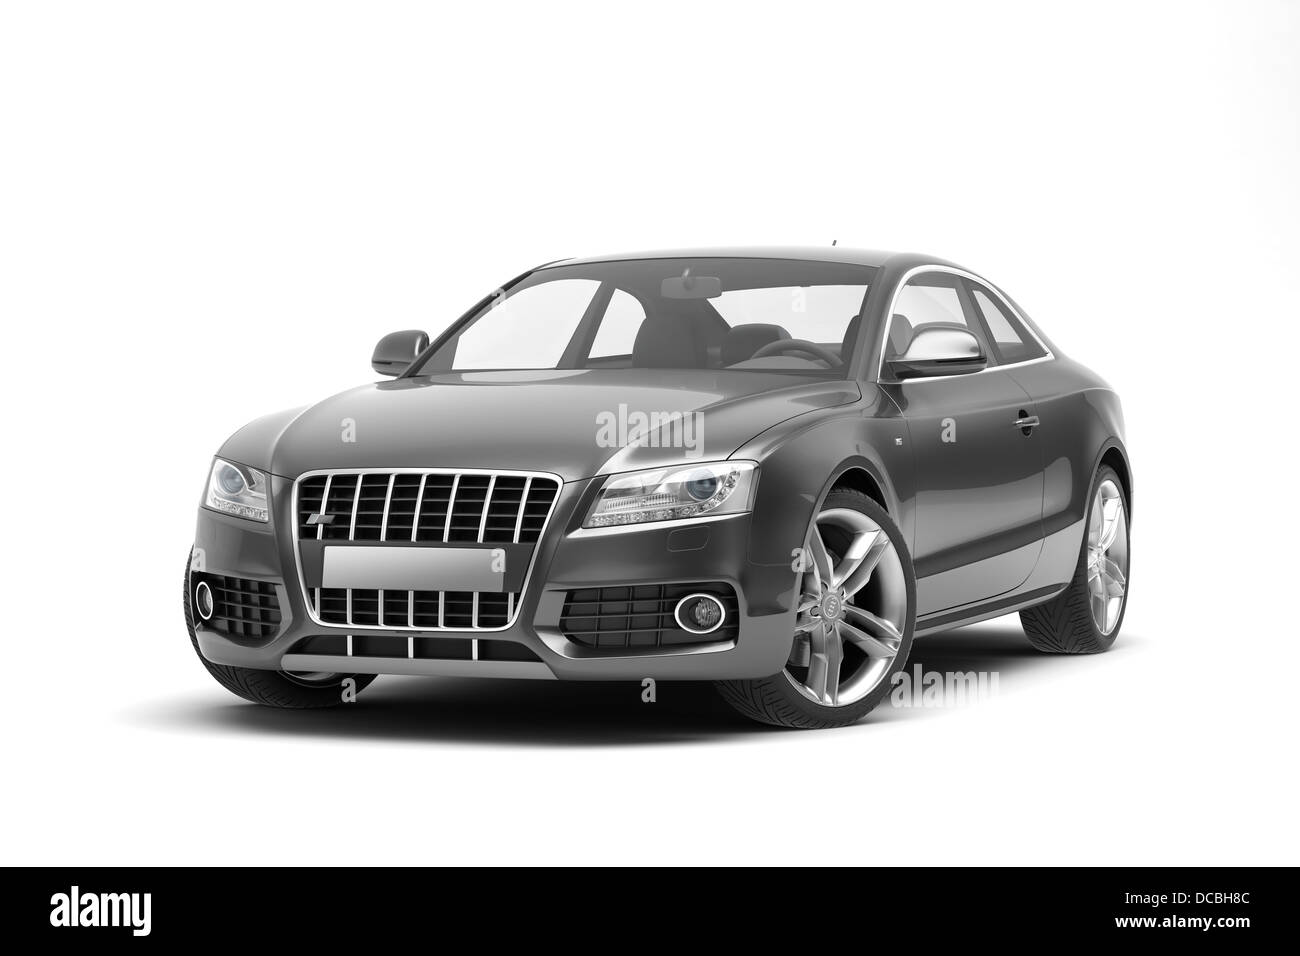 Black sport coupe car, on white background. - Stock Image